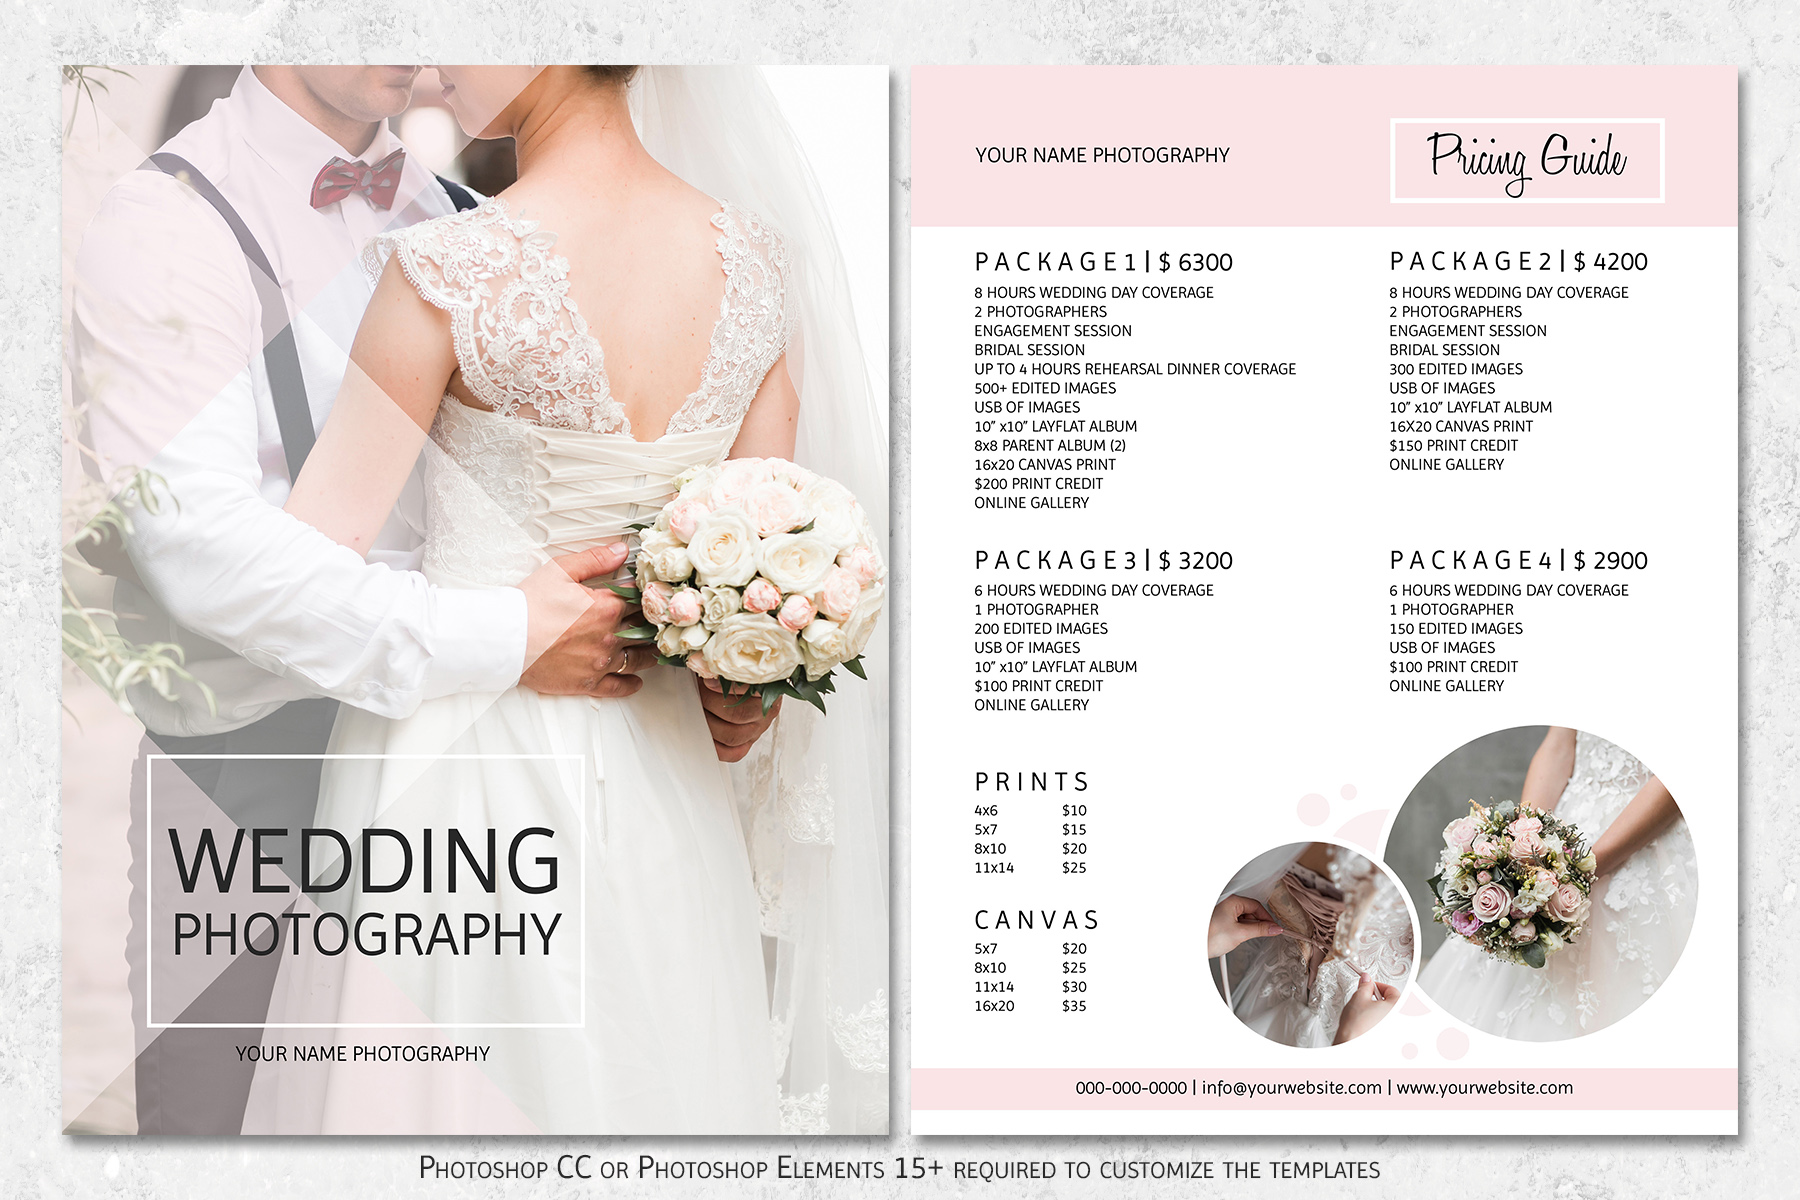 Wedding Photography Pricing.Wedding Photography Pricing Guide Template